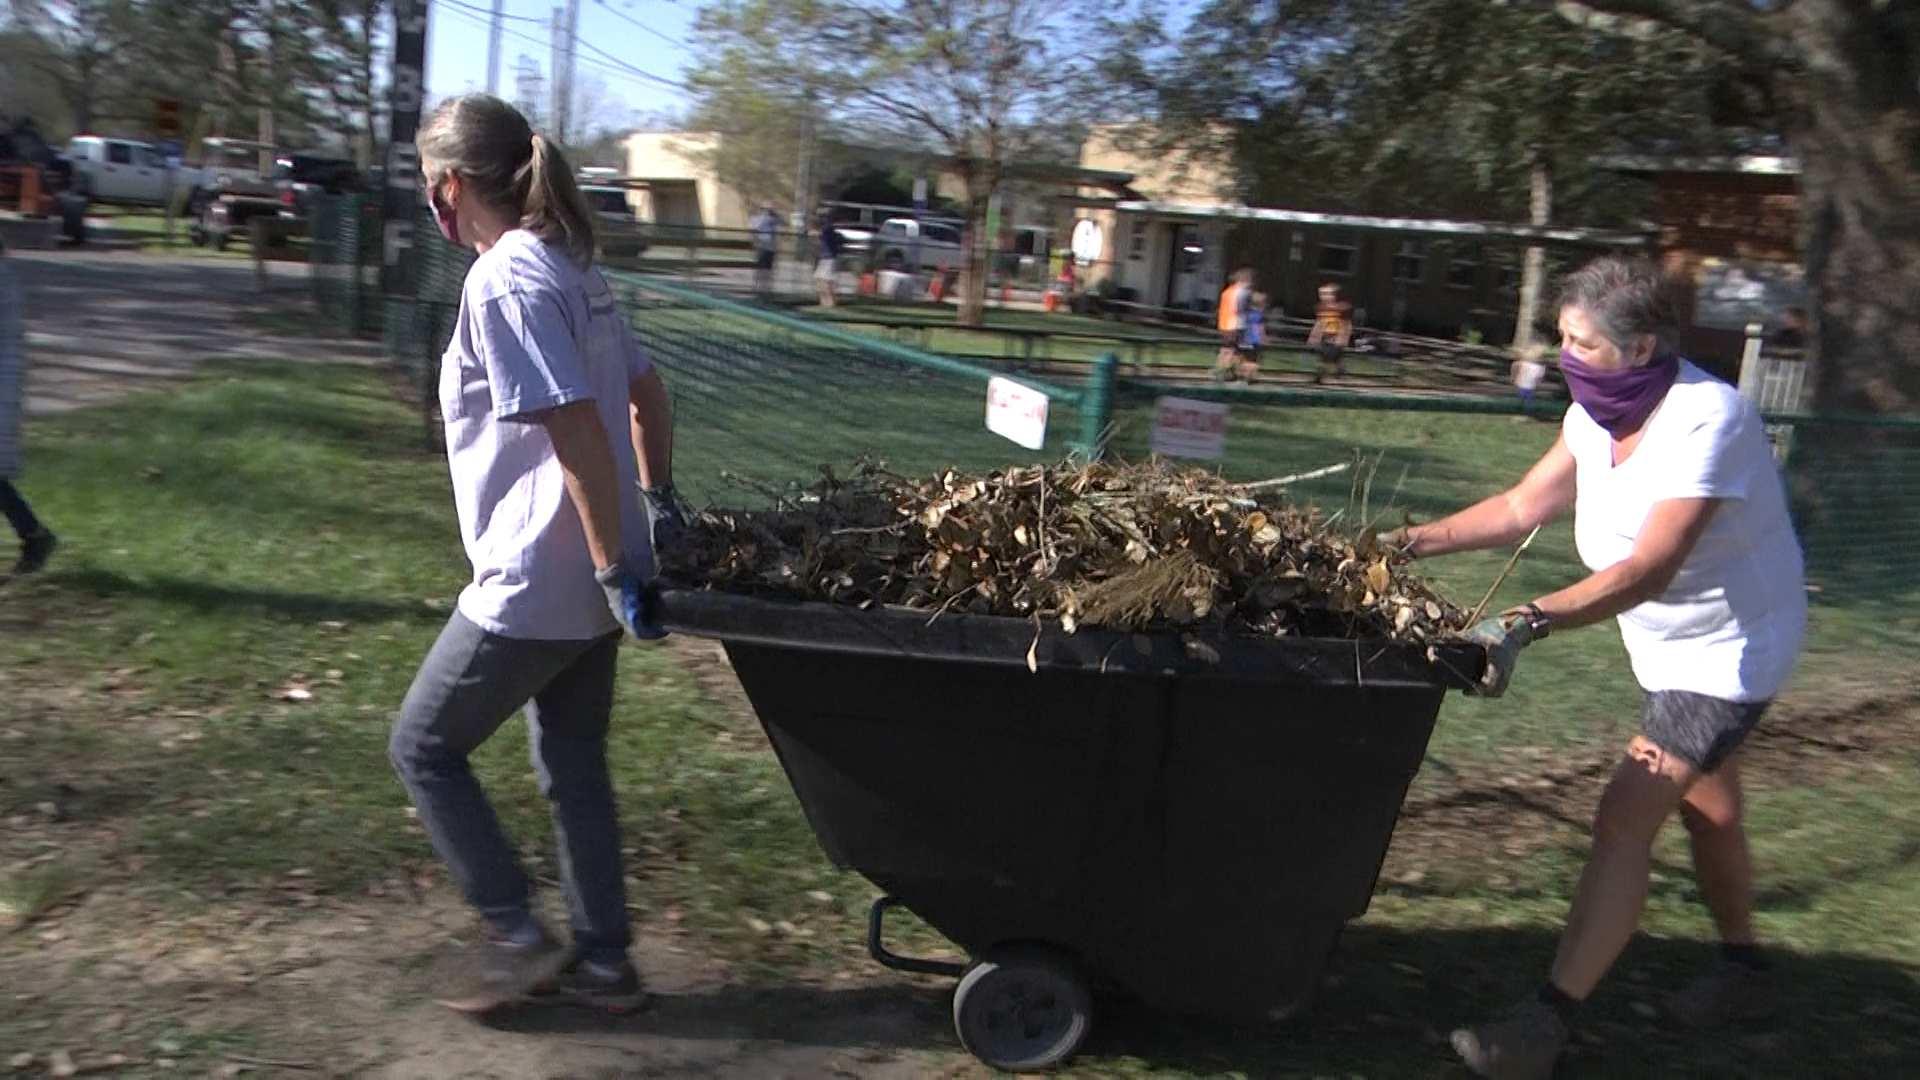 WKRG | Post Sally cleanup event at Silverhill Elementary